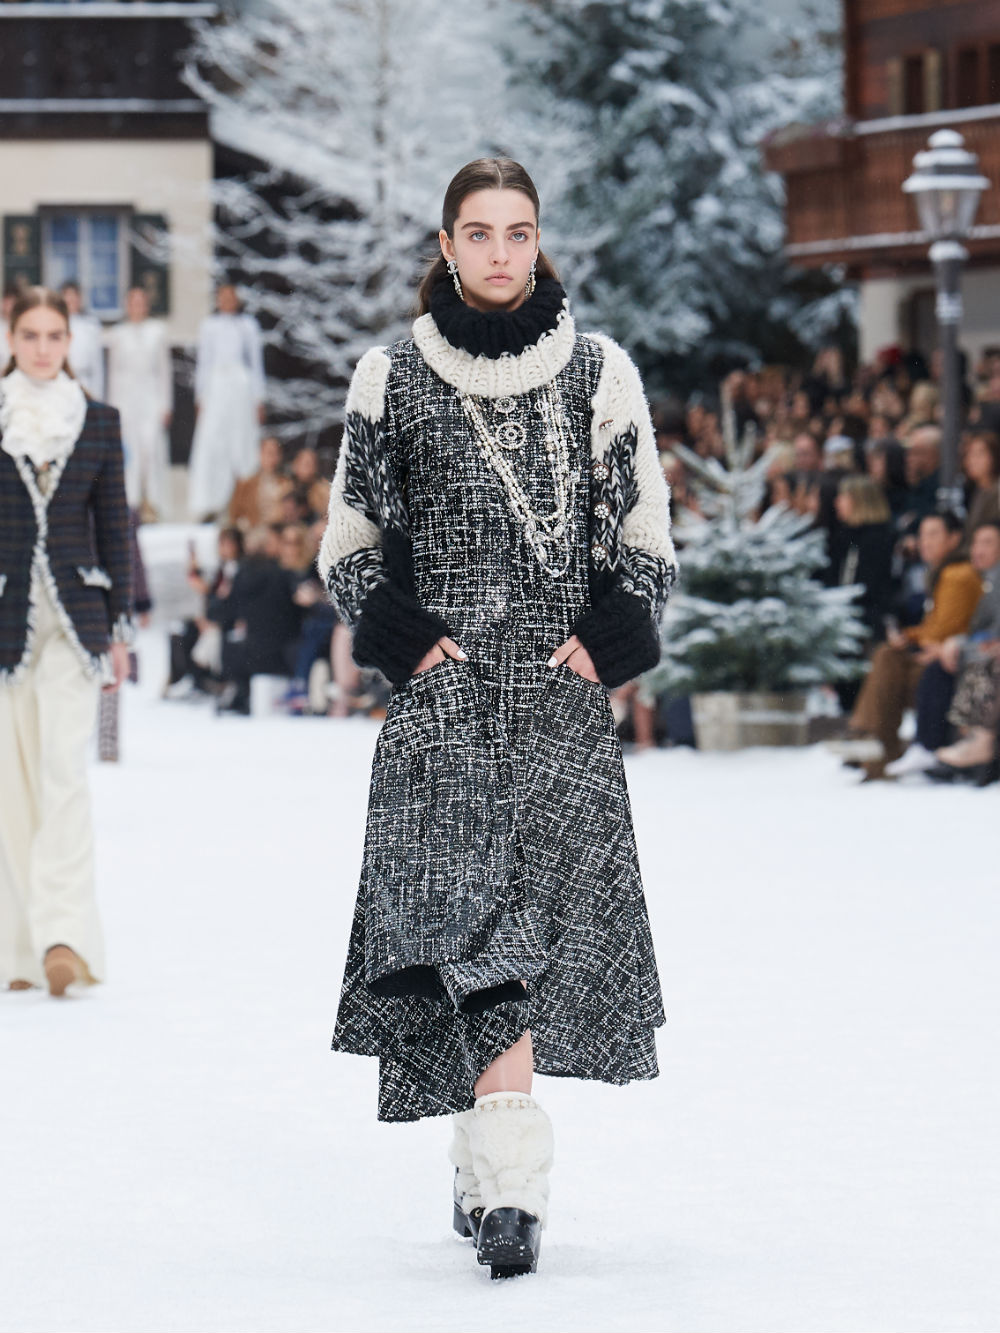 FALL-WINTER 201920 READY-TO-WEAR COLLECTION (21)